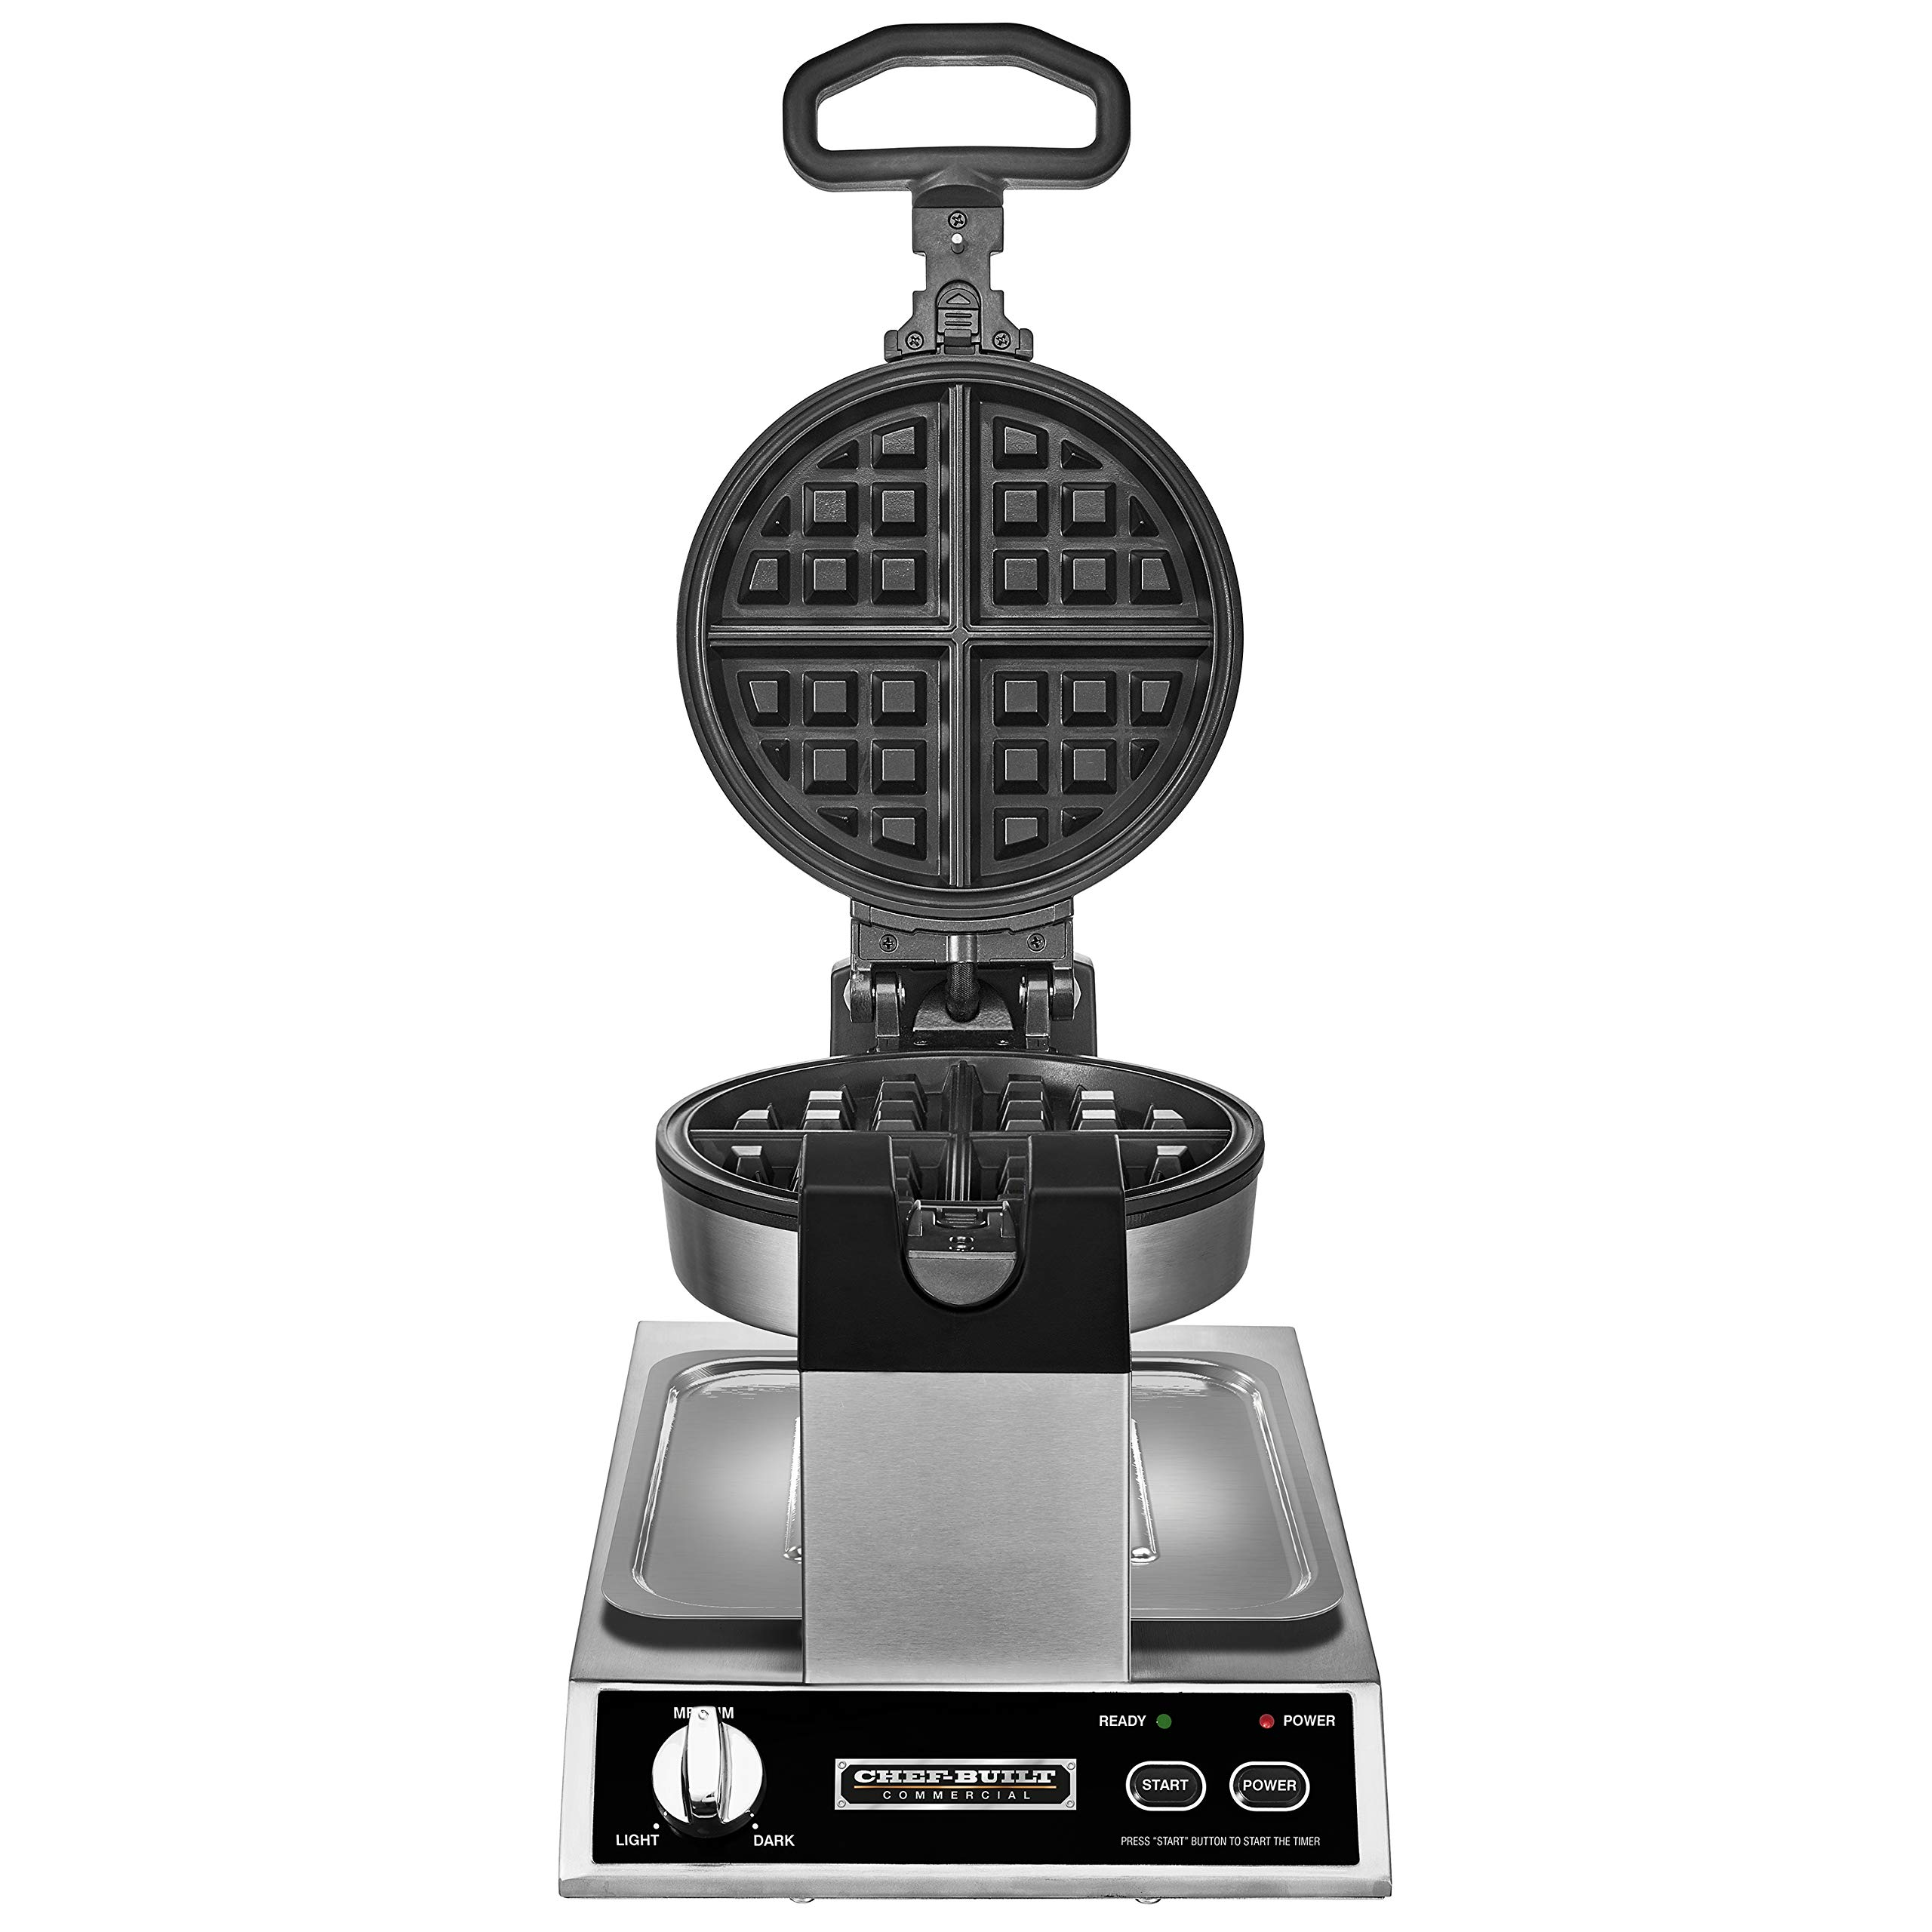 CHEF-BUILT (CWM-300) Commercial Rotating Classic Waffle Maker